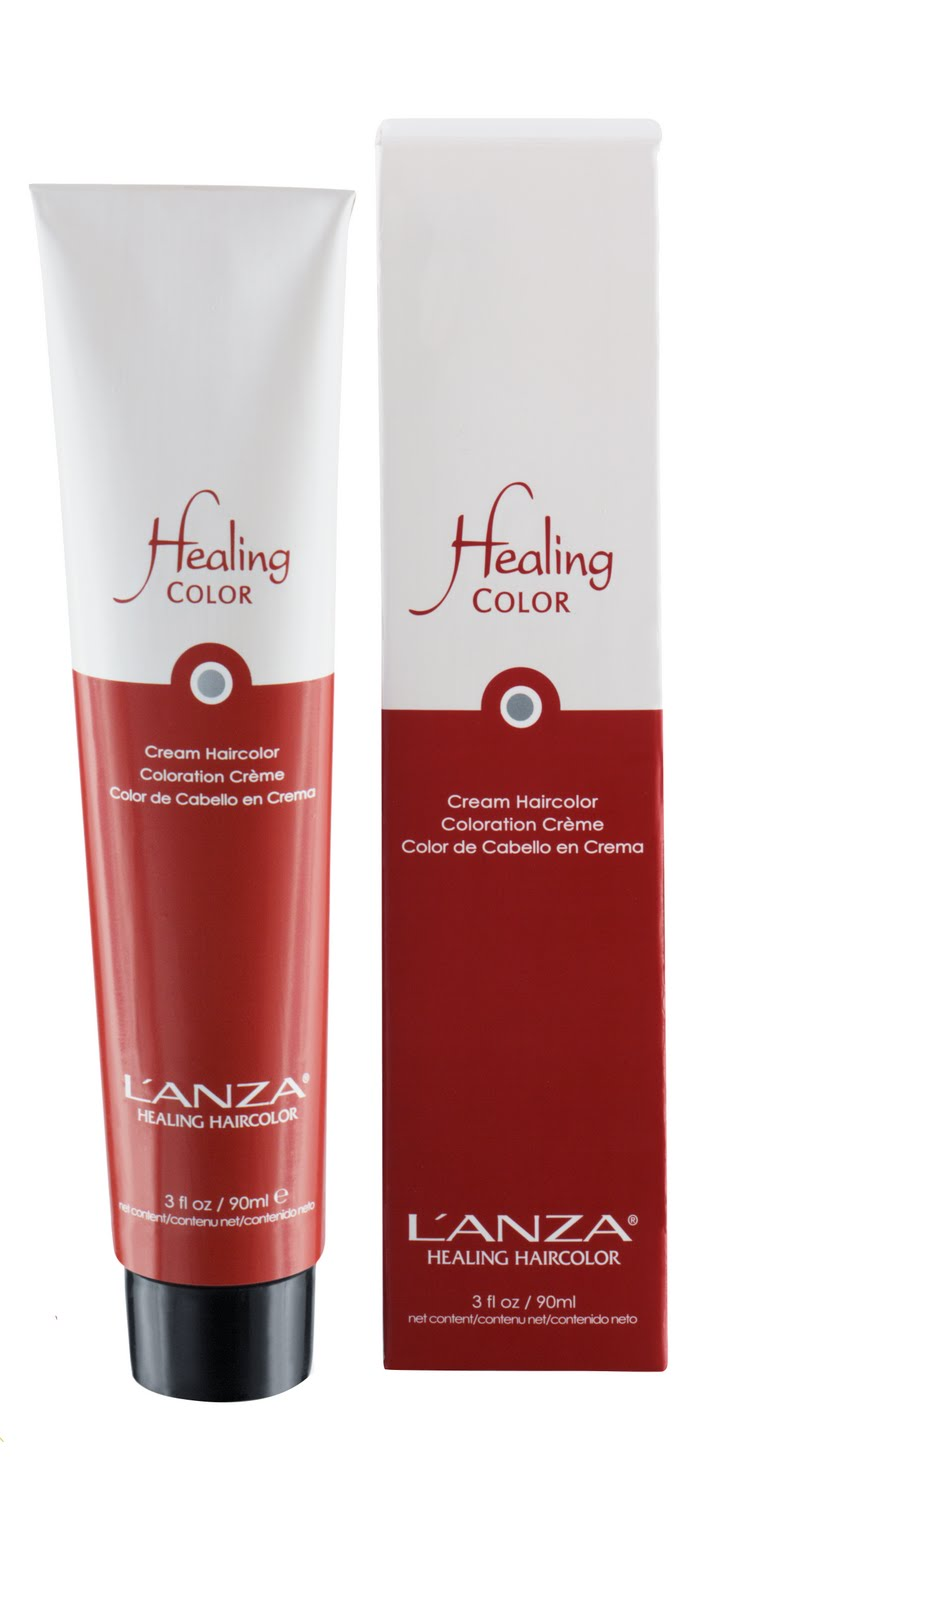 Lanza Healing Color To Heat Or Not To Heat Lanza Healing Haircare